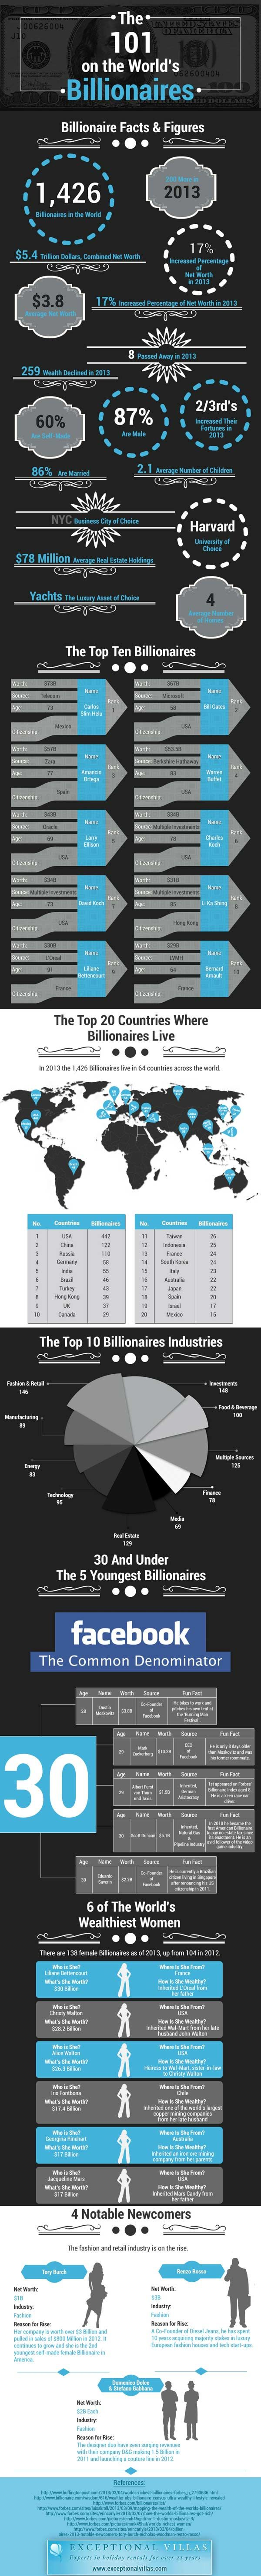 25 best Business Infographics images on Pinterest | Business ...